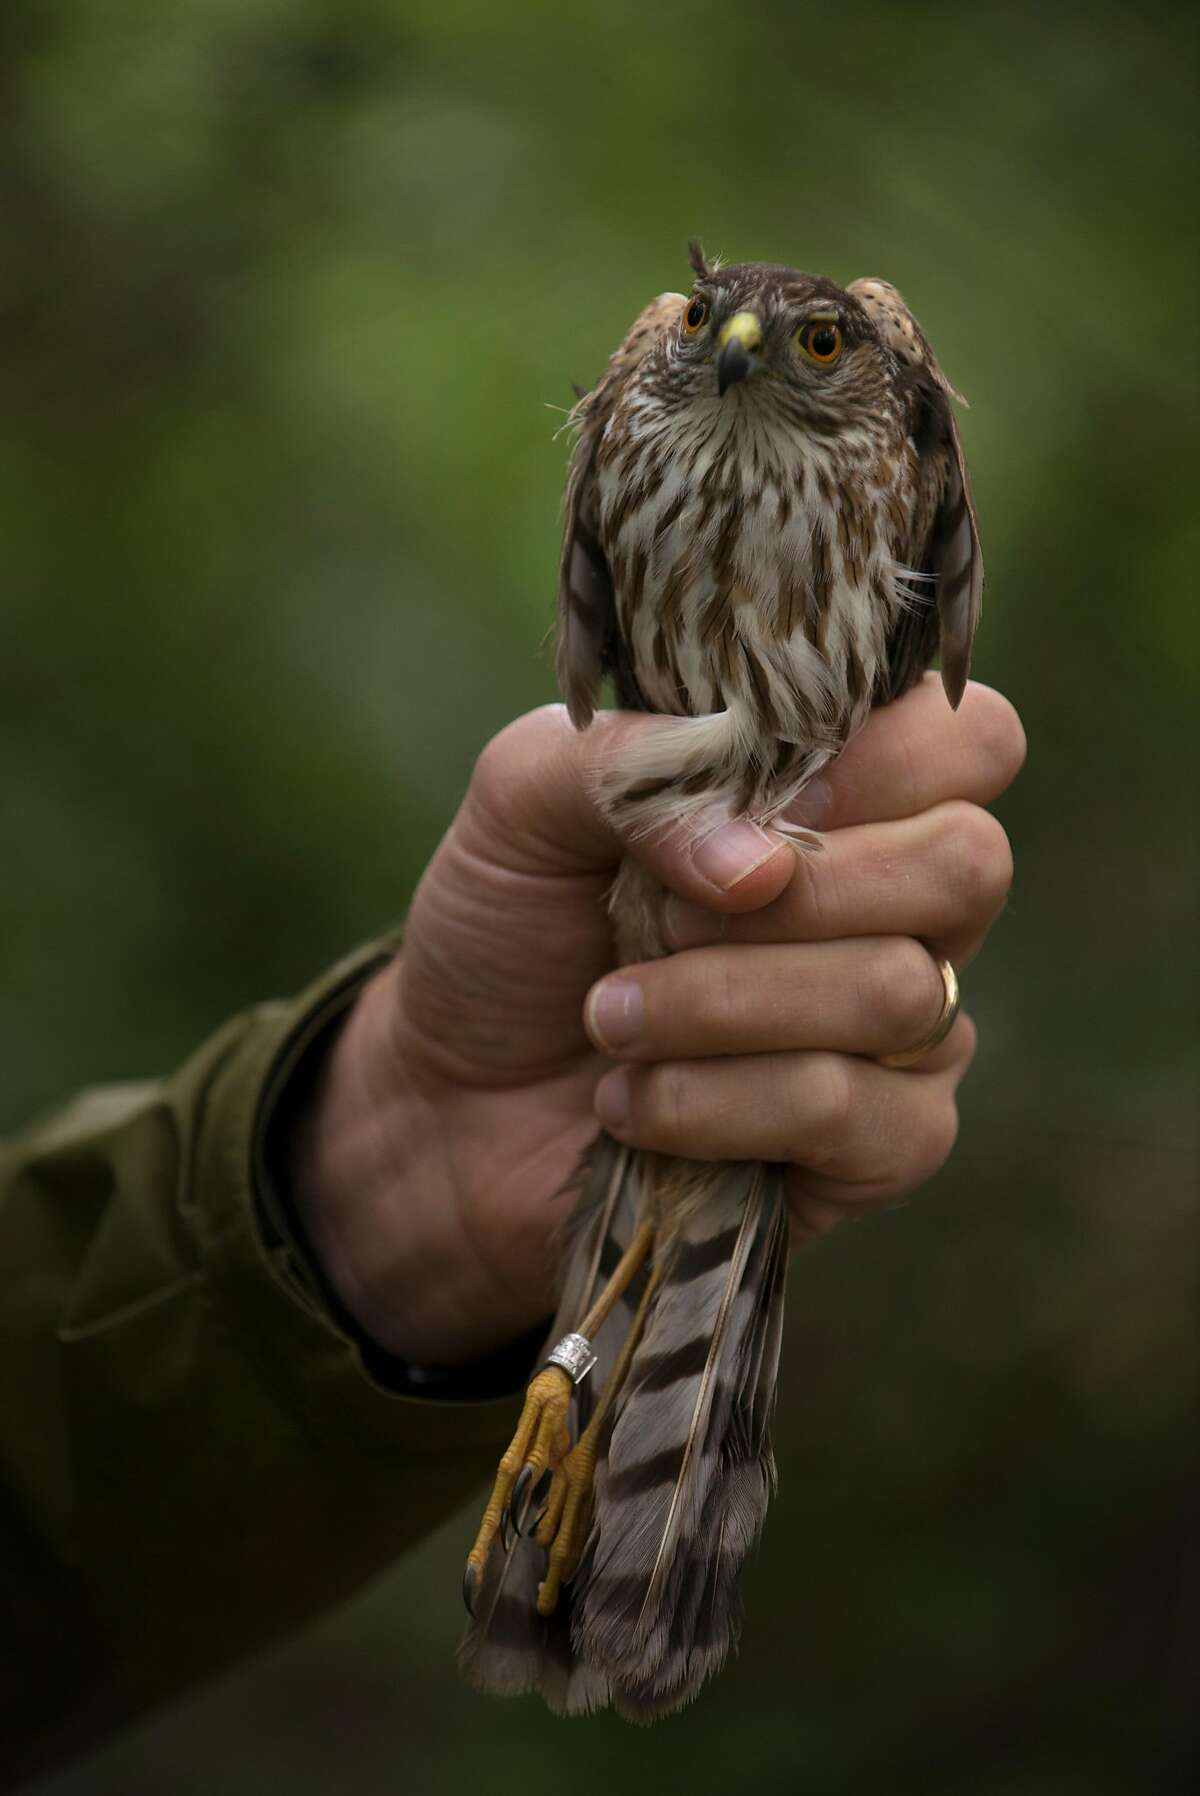 Avian Ecologist Mark Dettling holding a recently captured sharp-shinned hawk at the Palomarin Field Station in Bolinas, California. May 4, 2017